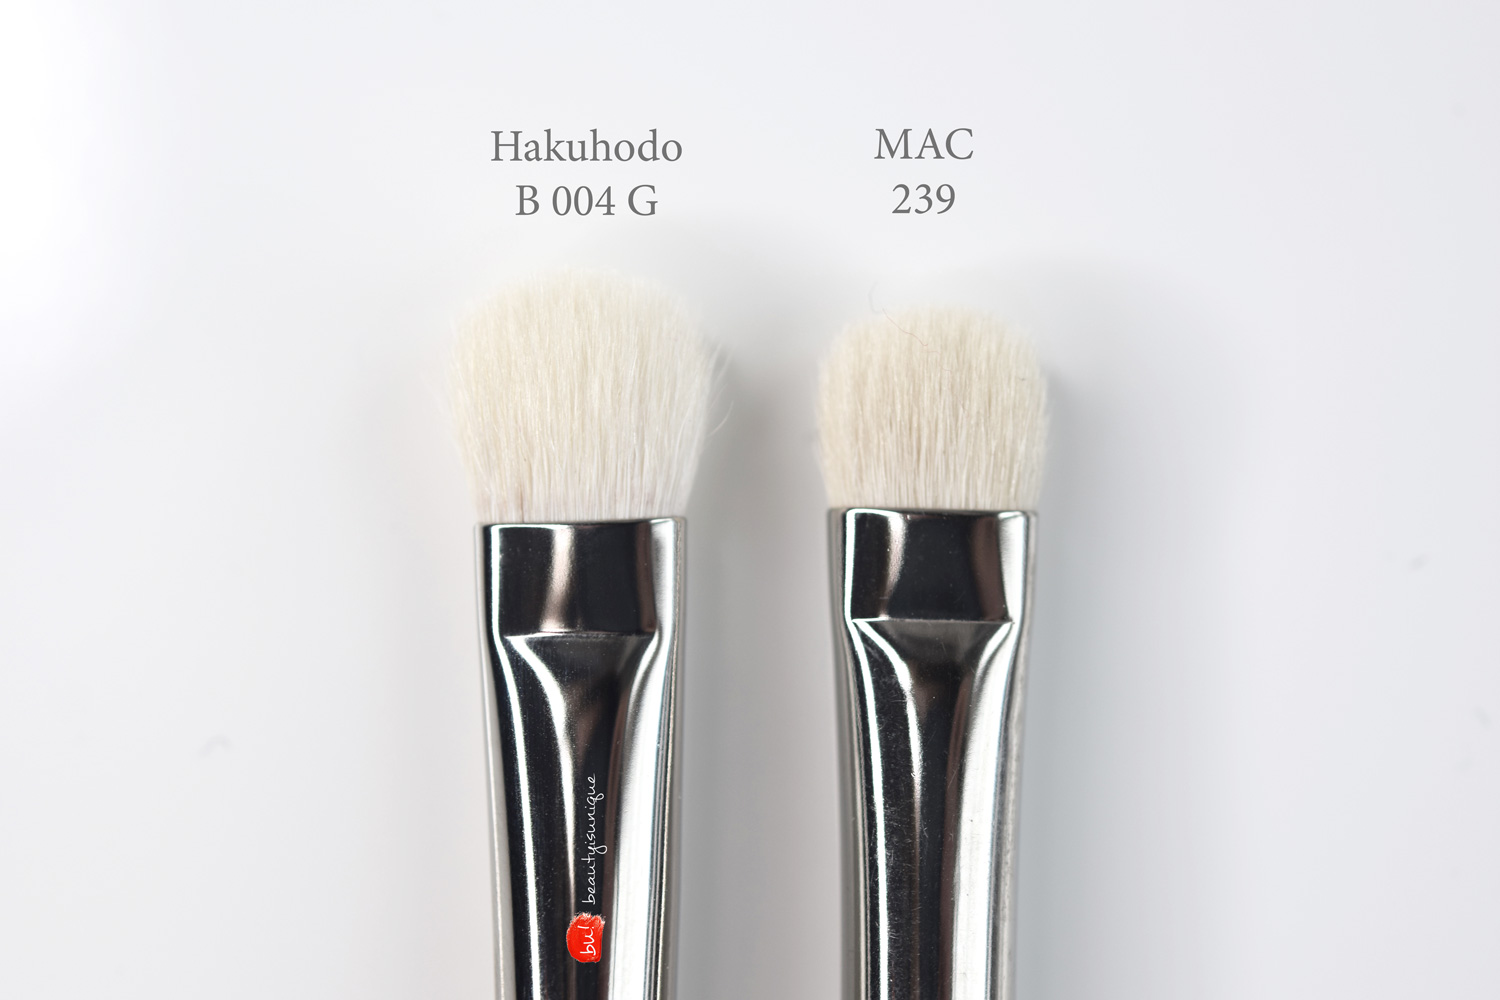 Hakuhodo-B004-vs-mac-239